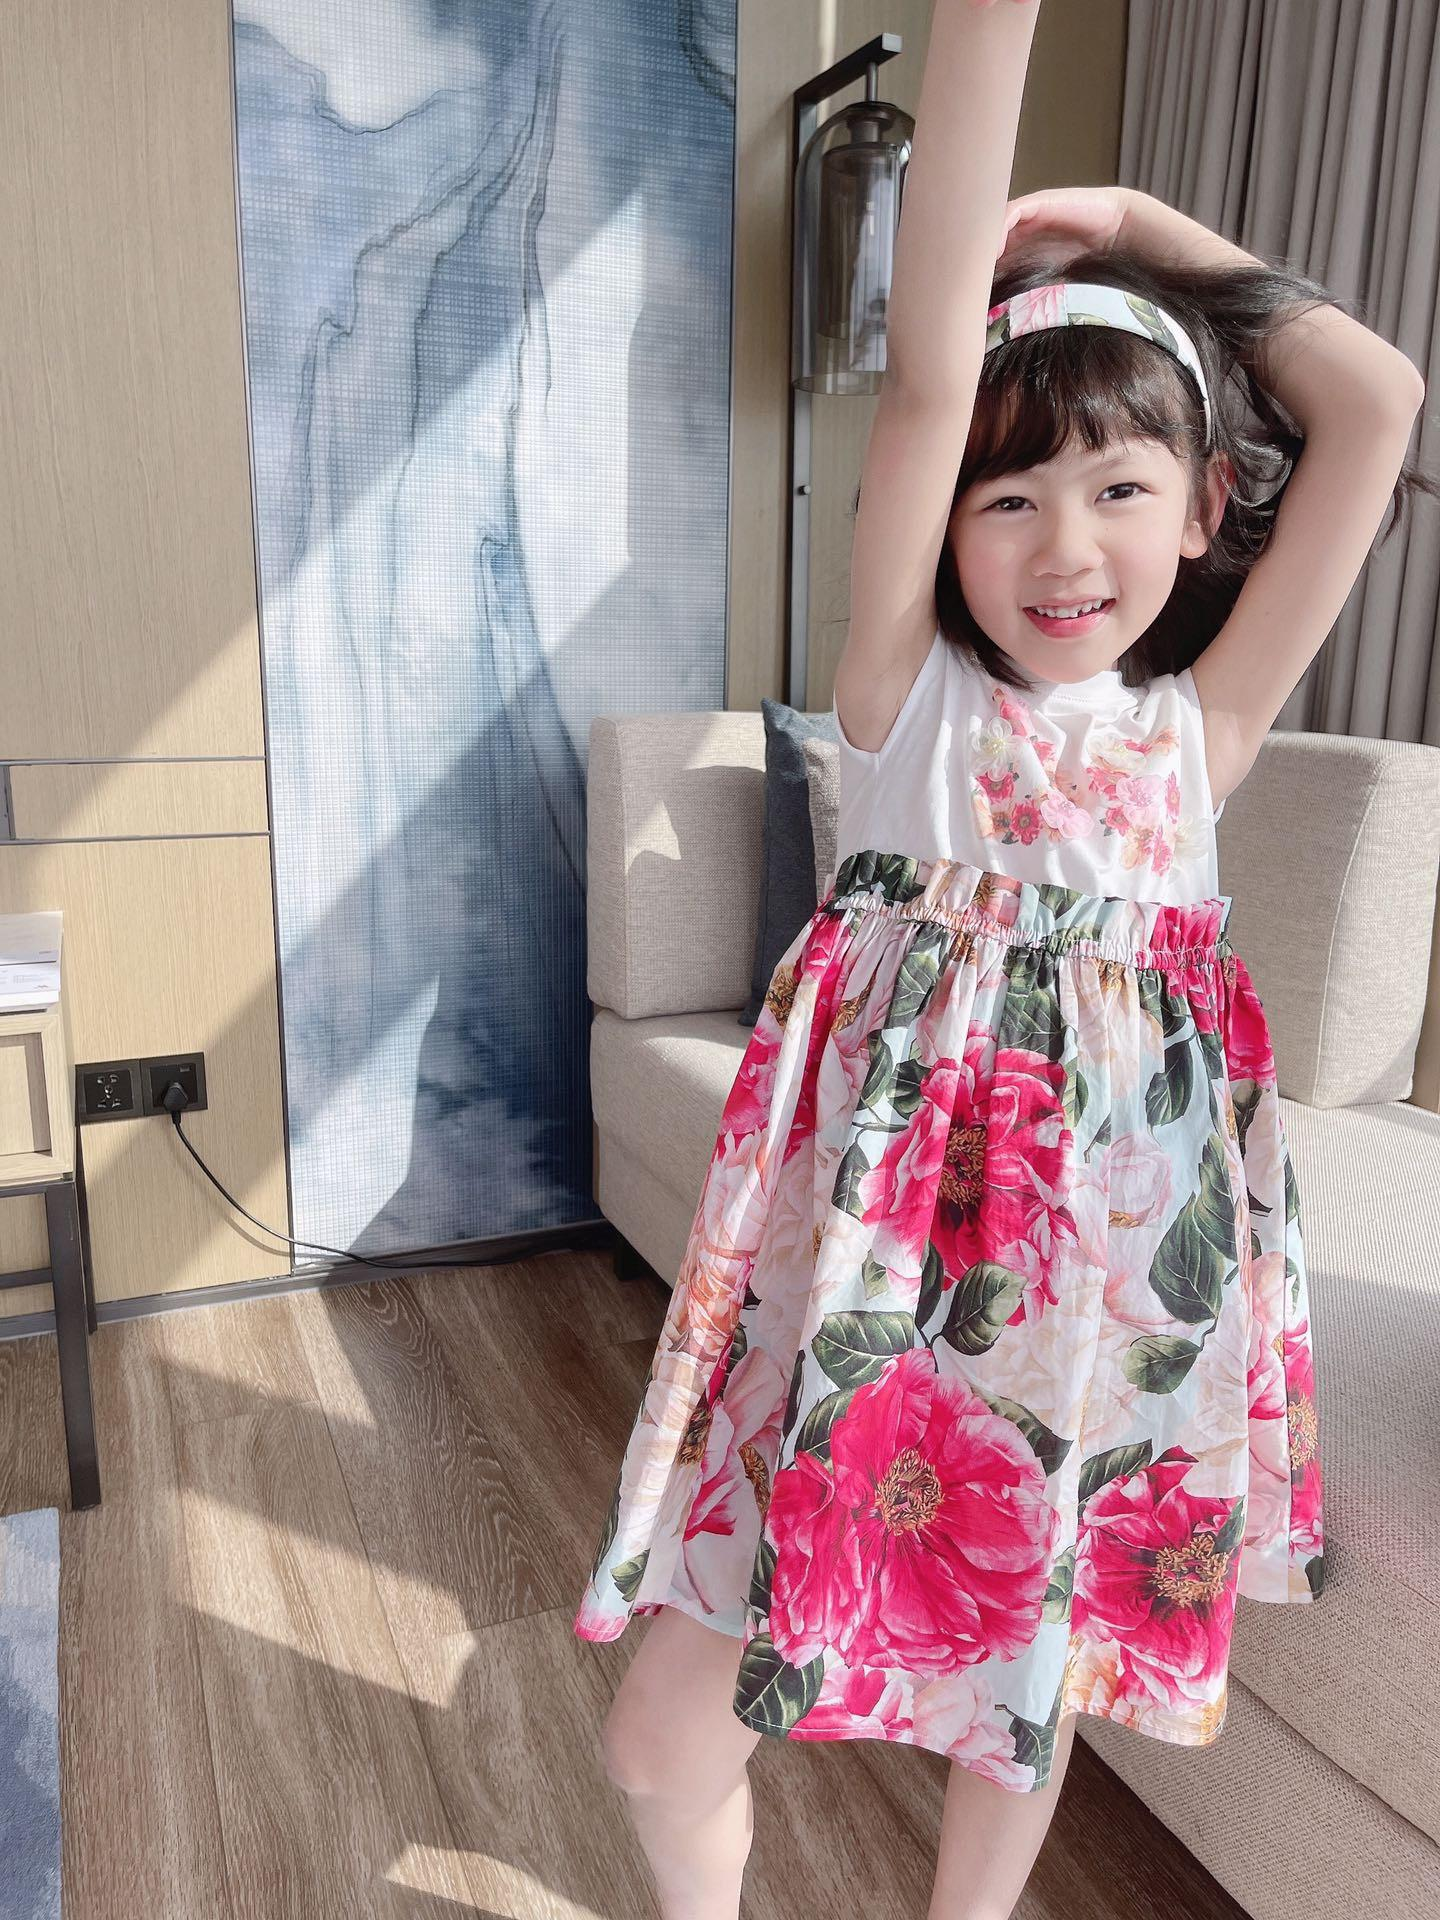 children floral dress kids girl summer sweet baby girls Cotton birthday party dresses fashion outwear clothing